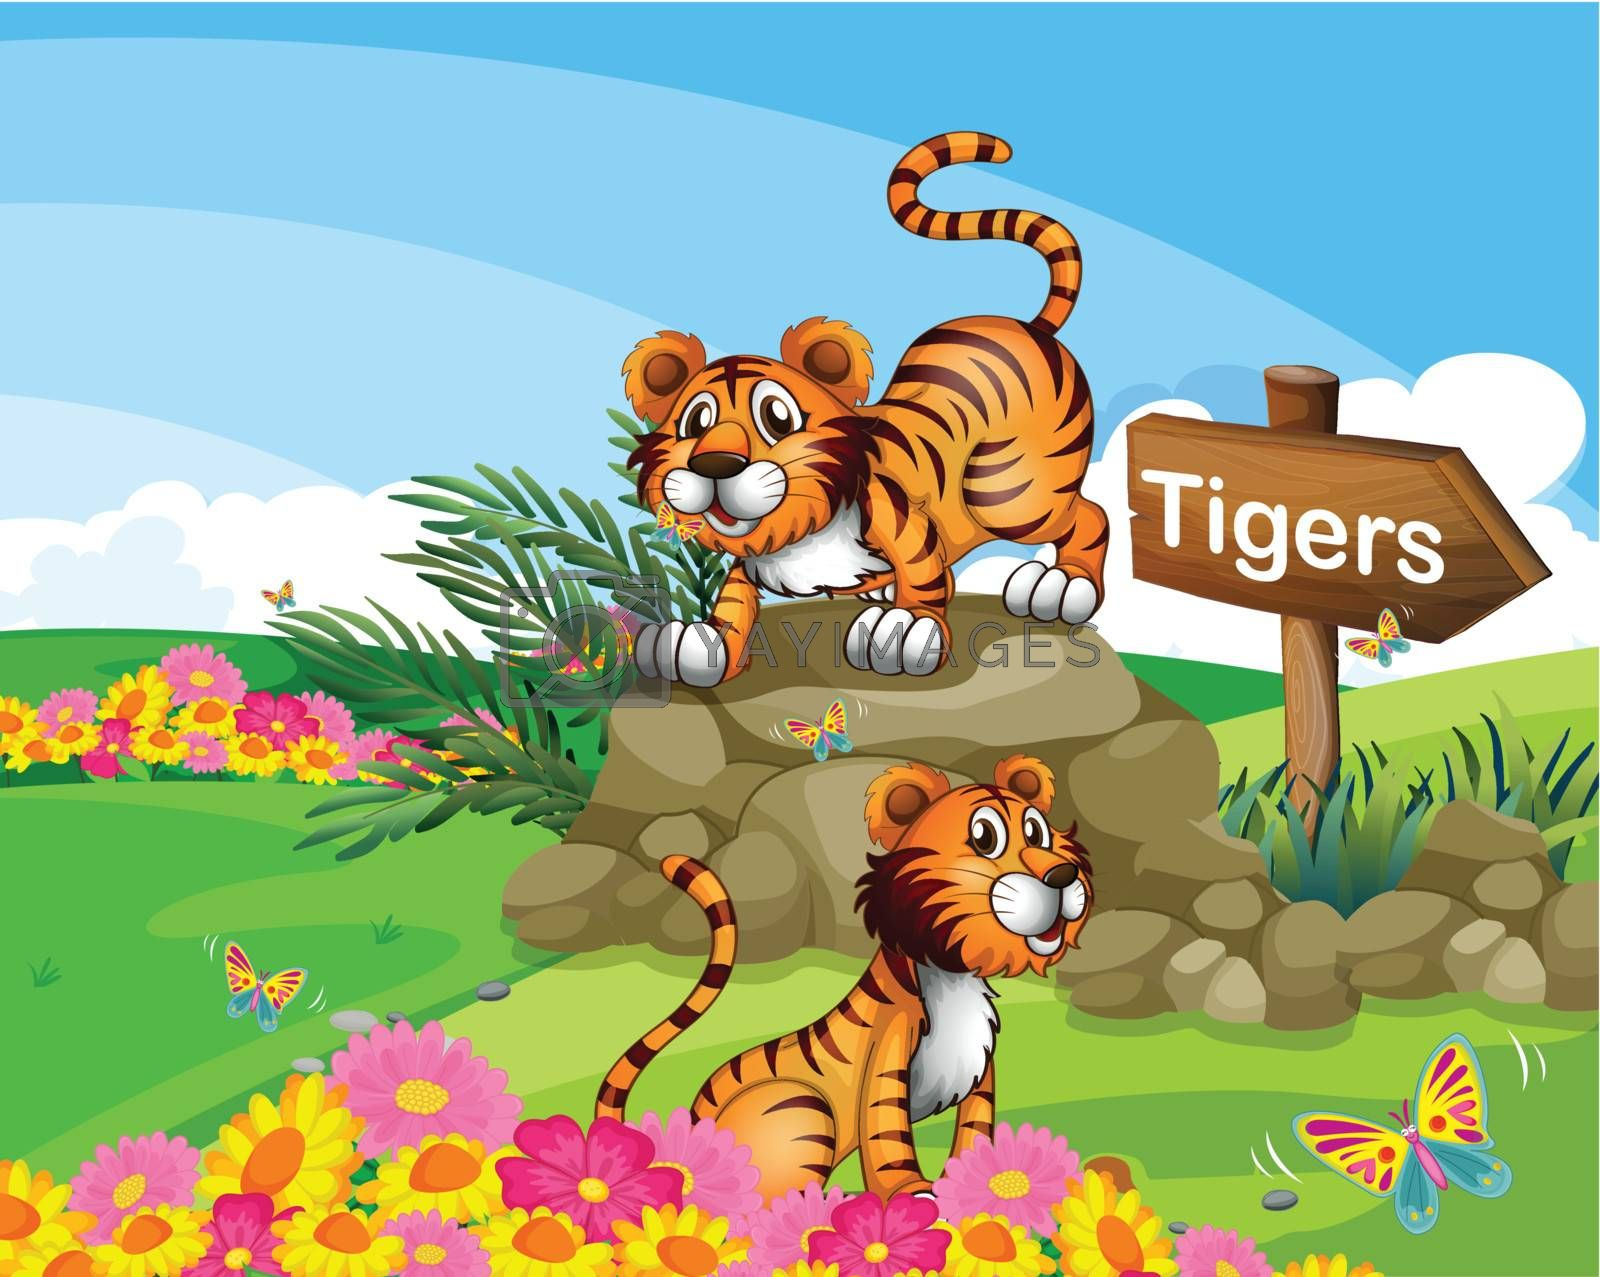 Illustration of the two tigers beside a signboard